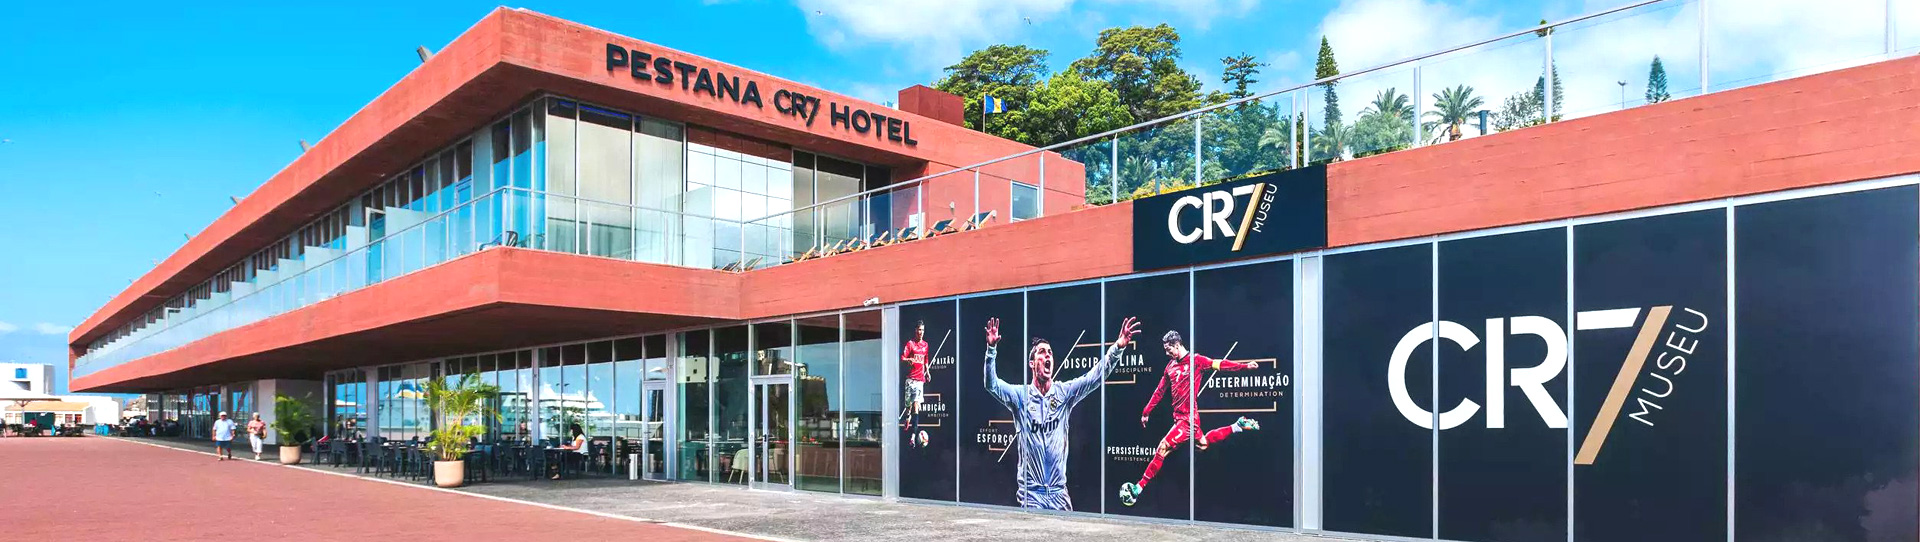 Pestana CR7 Funchal - Photo 1